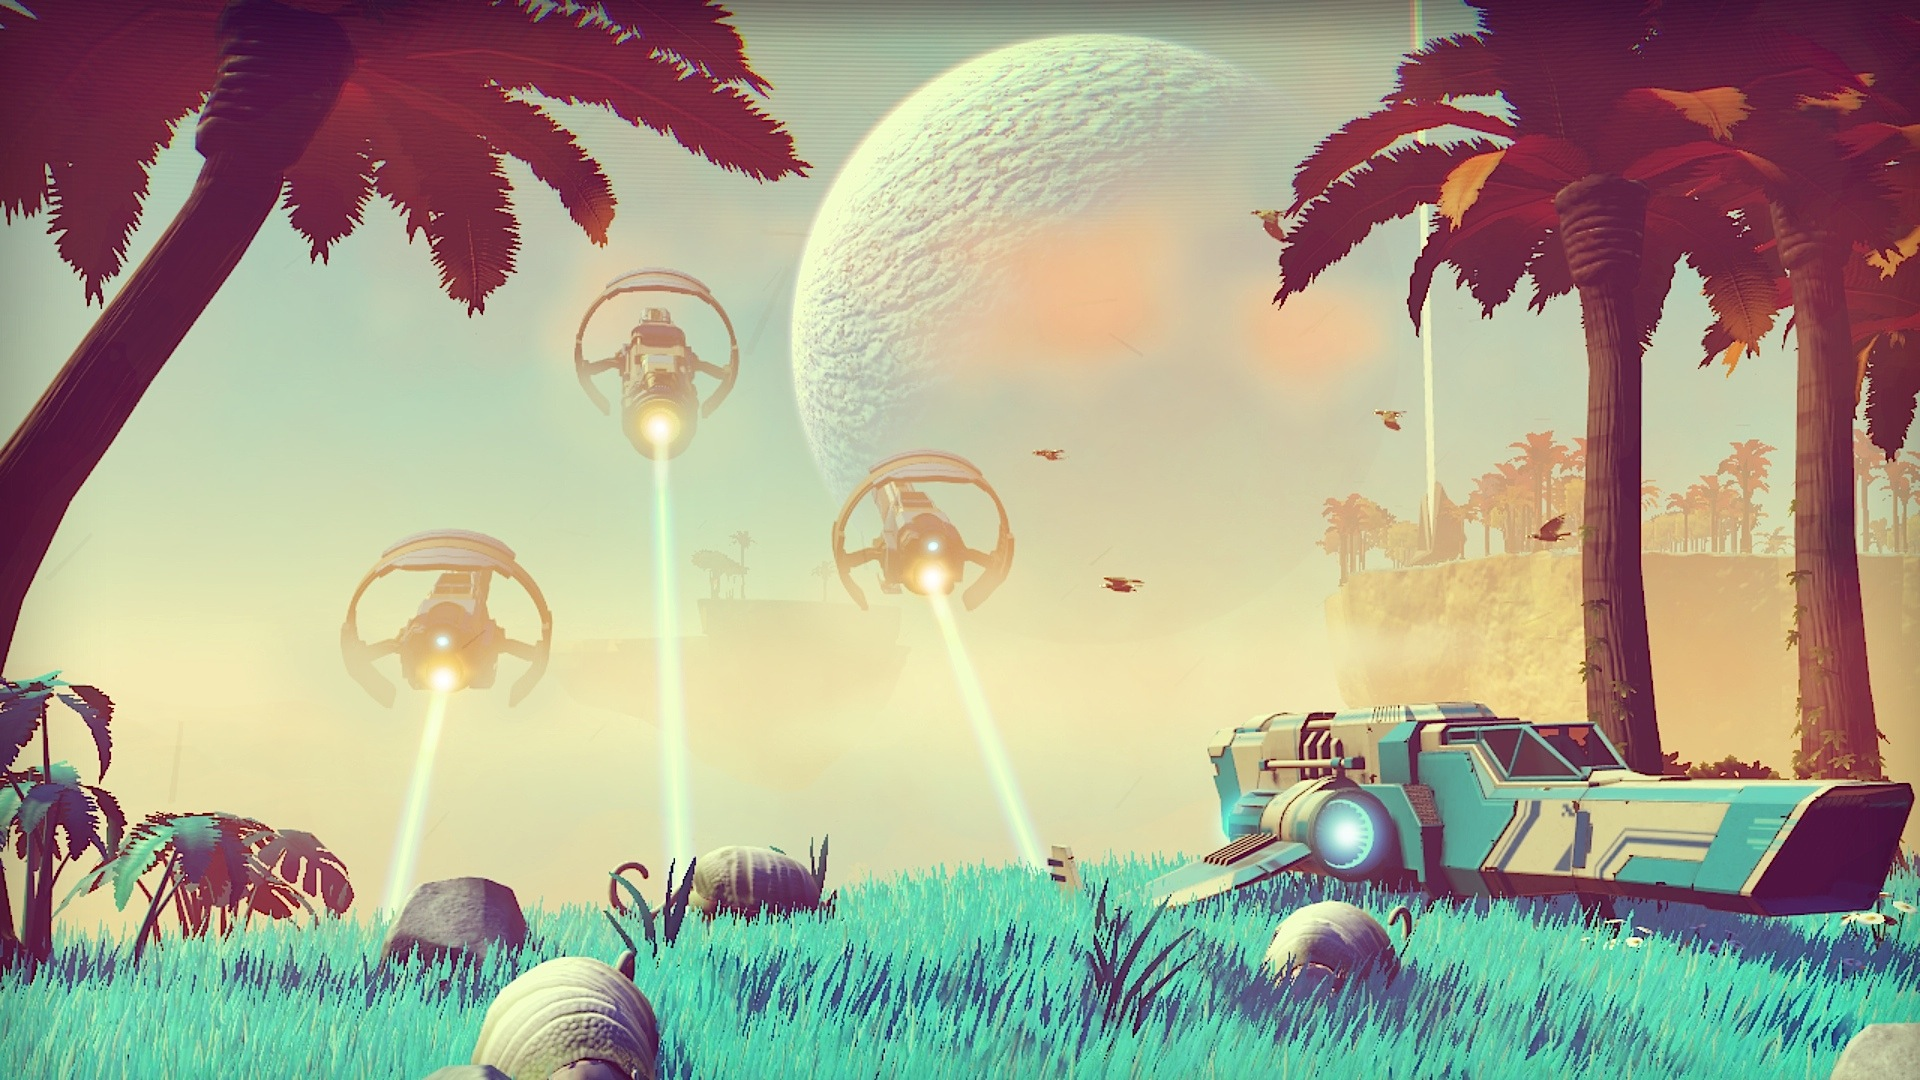 No Man's Sky will have a 'traditional' multiplayer component